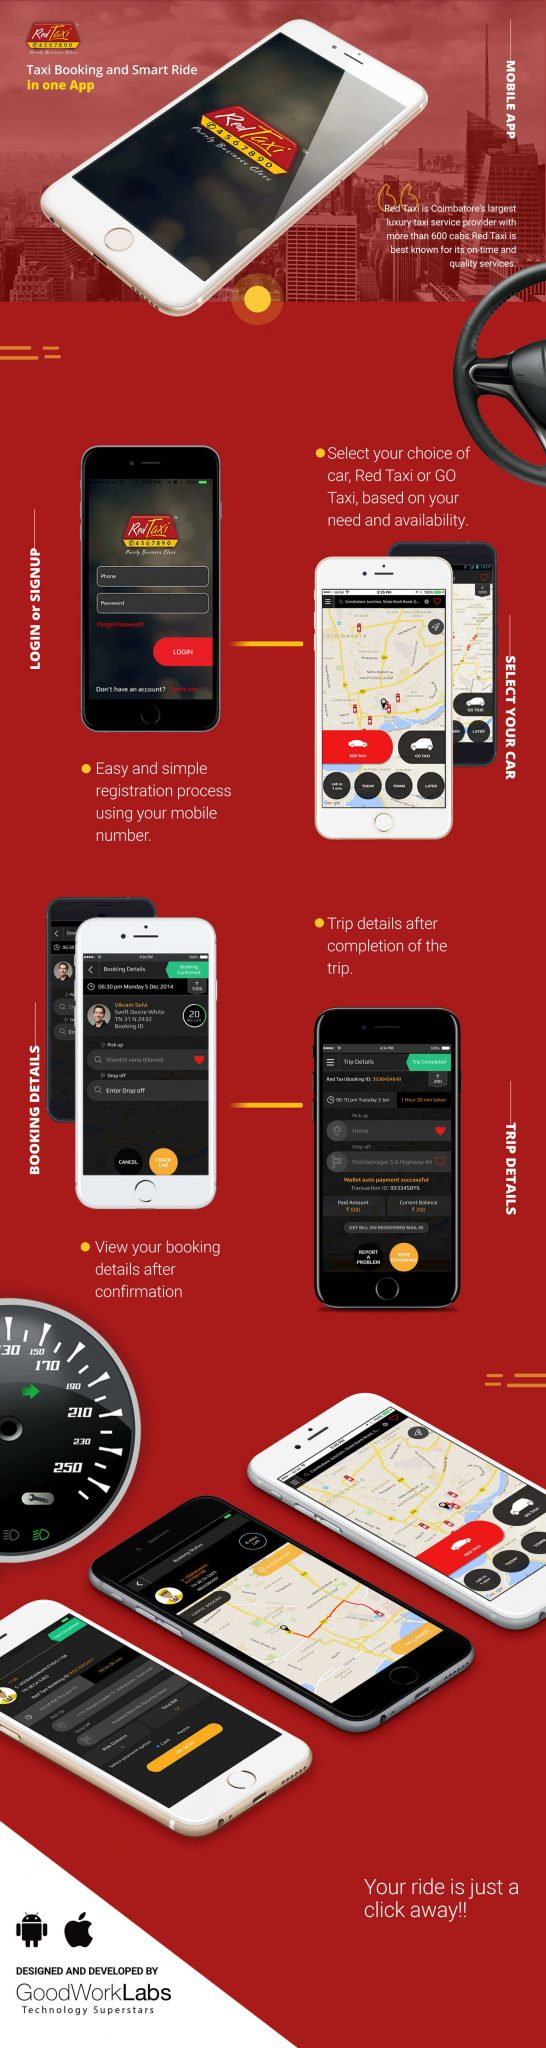 redtaxi-taxi-booking-app-development-goodworklabs